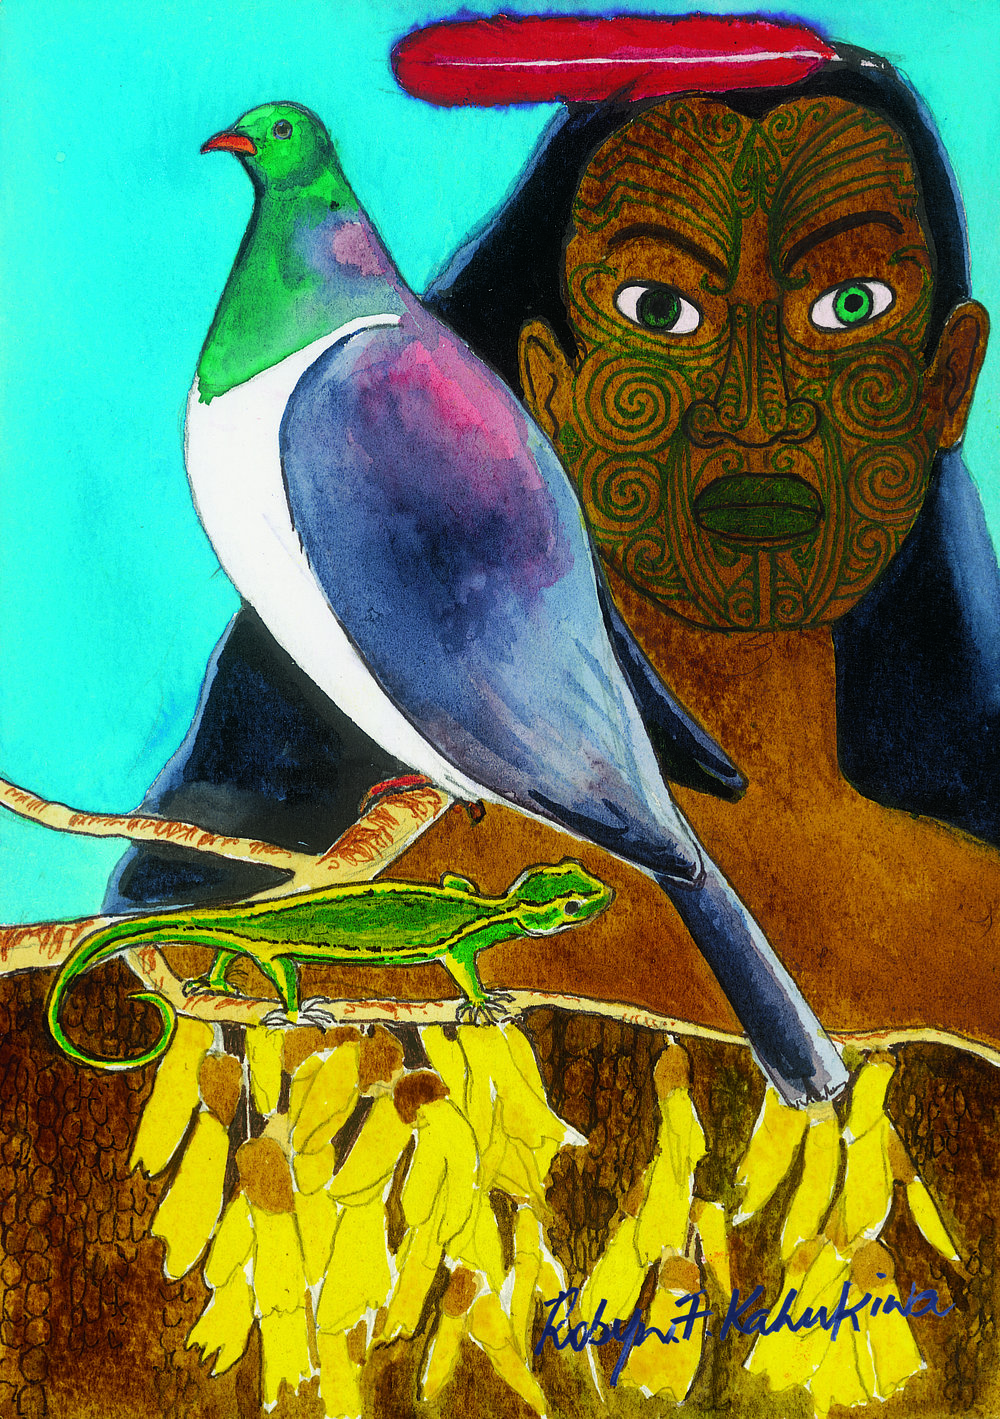 'Maui'  by Robyn Kahukiwa. Click   here   to learn more about this artwork.